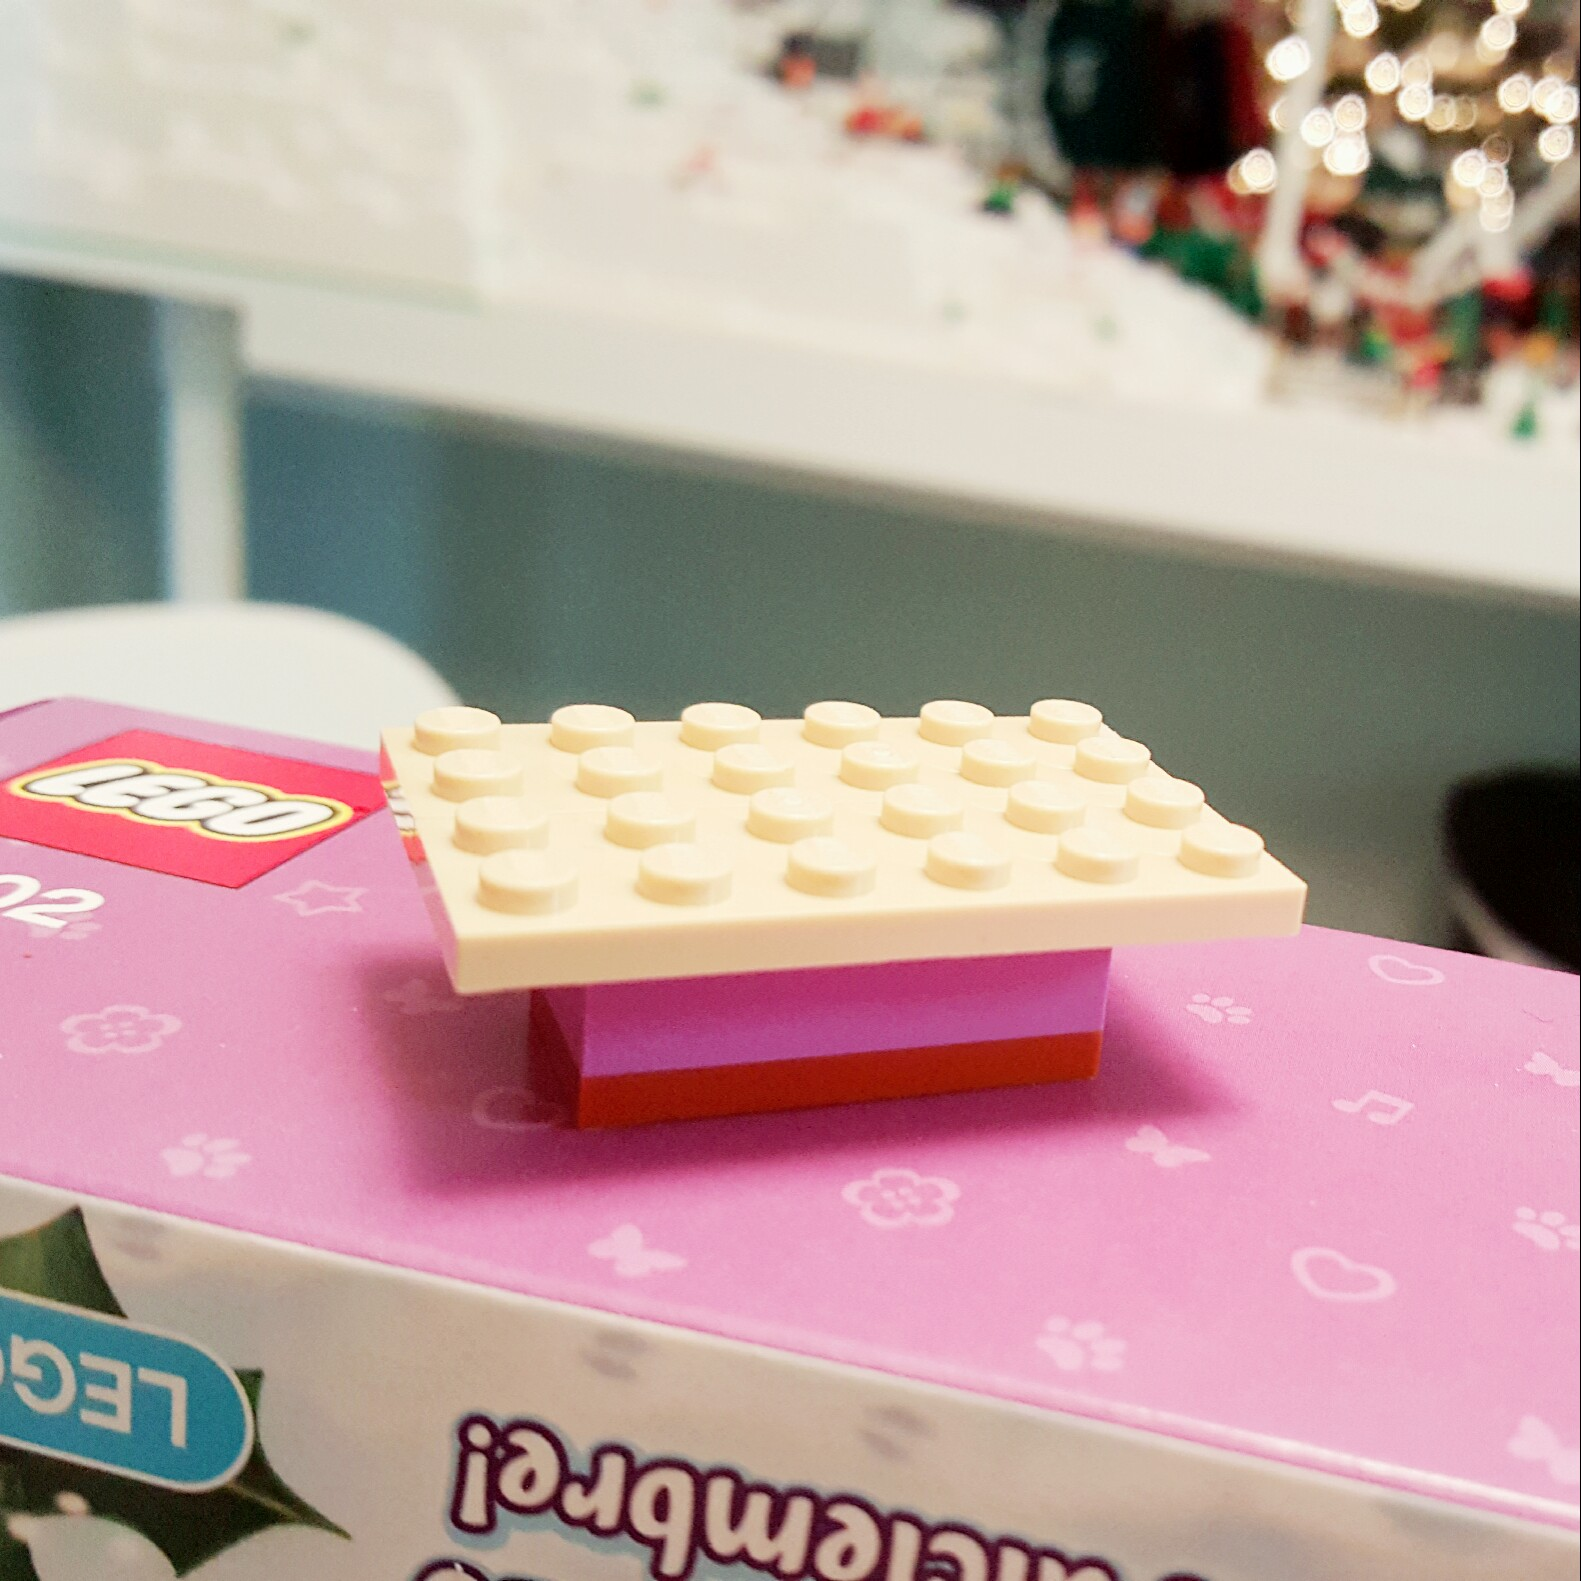 """""""Meh."""" - Day 18 Bench from LEGO Friends Advent Calendar"""